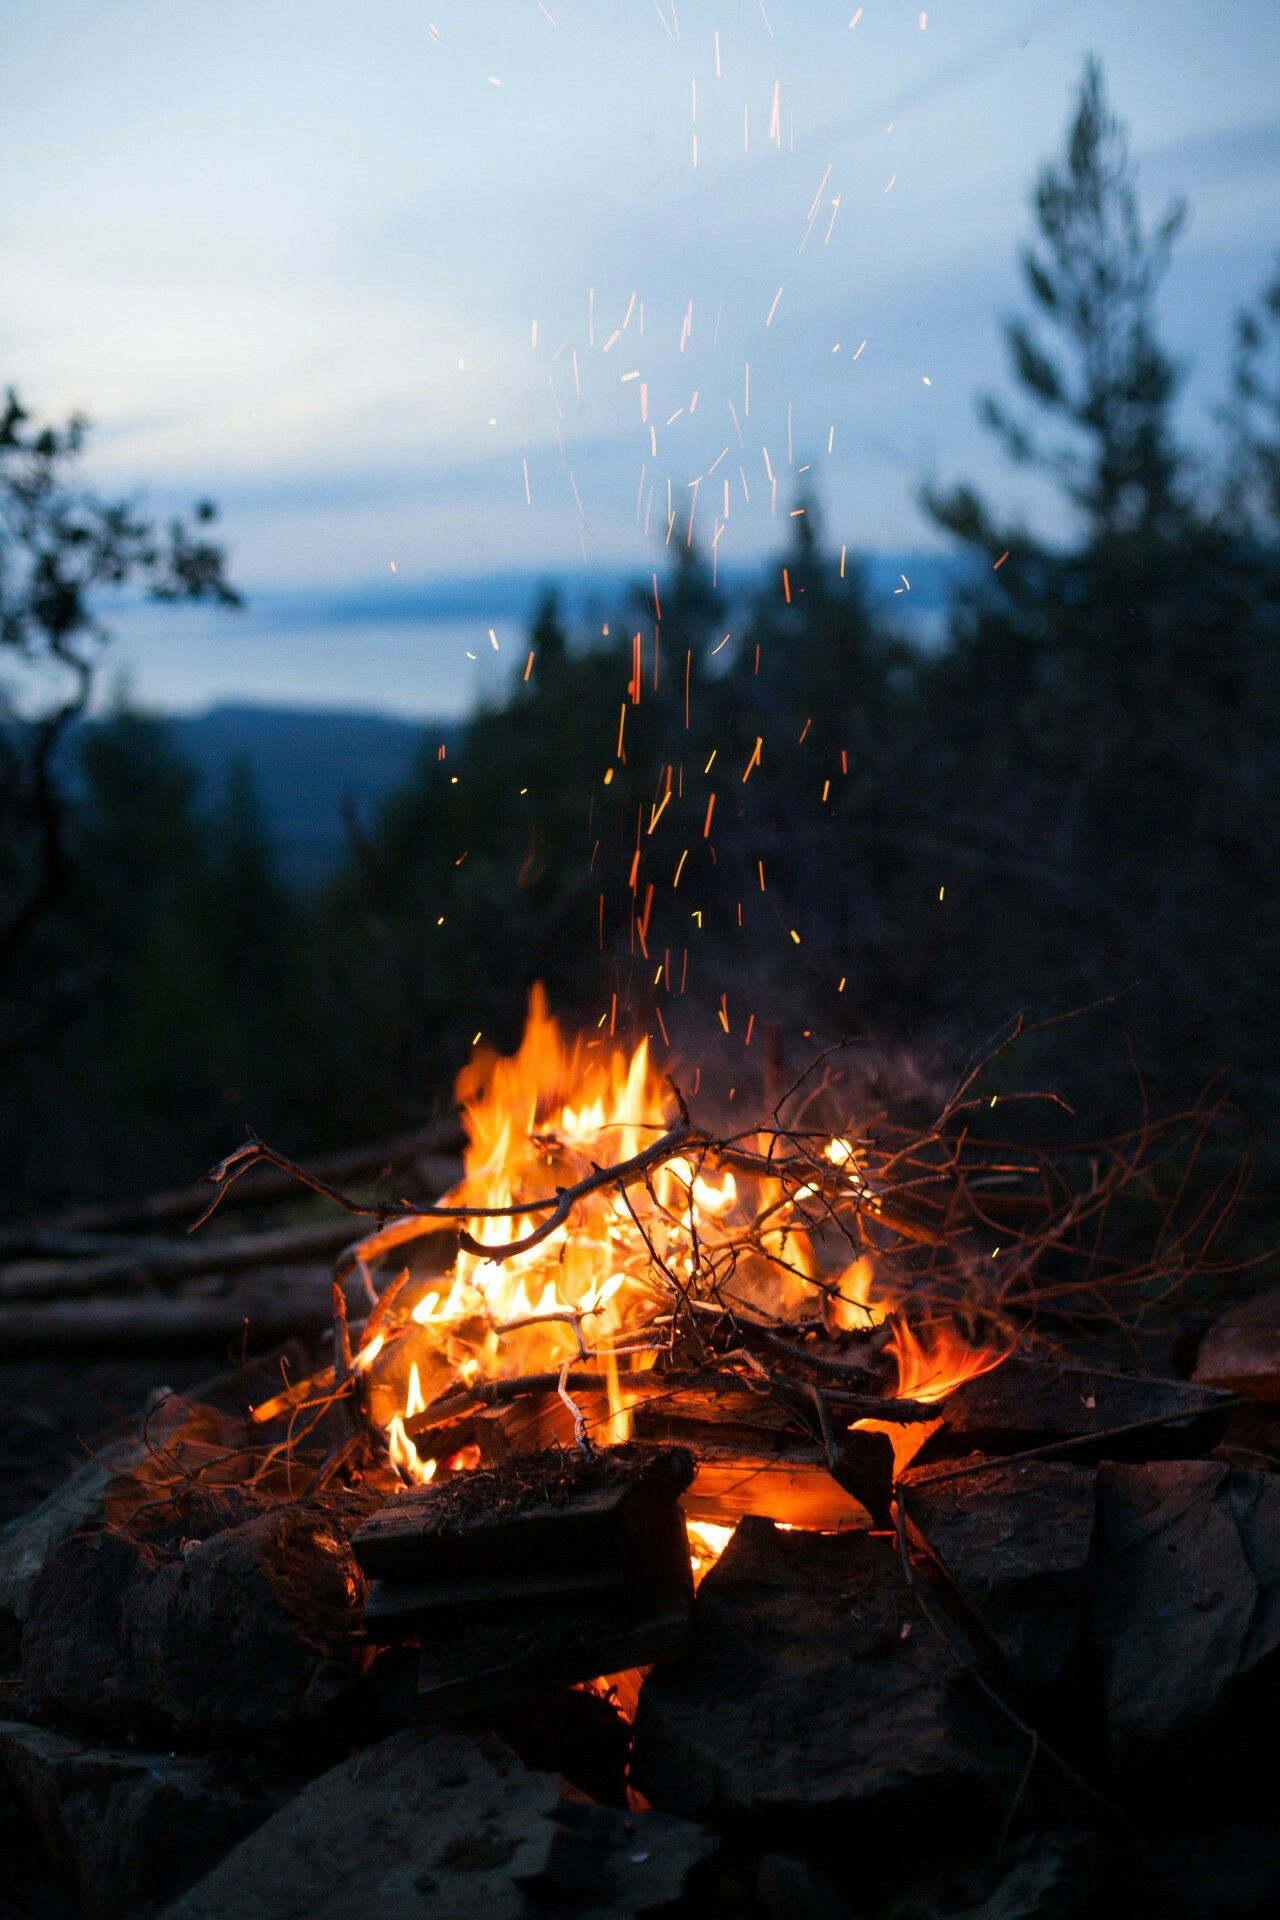 fire camping nature fall autumn aesthetics iphone wallpaper in rh pinterest com